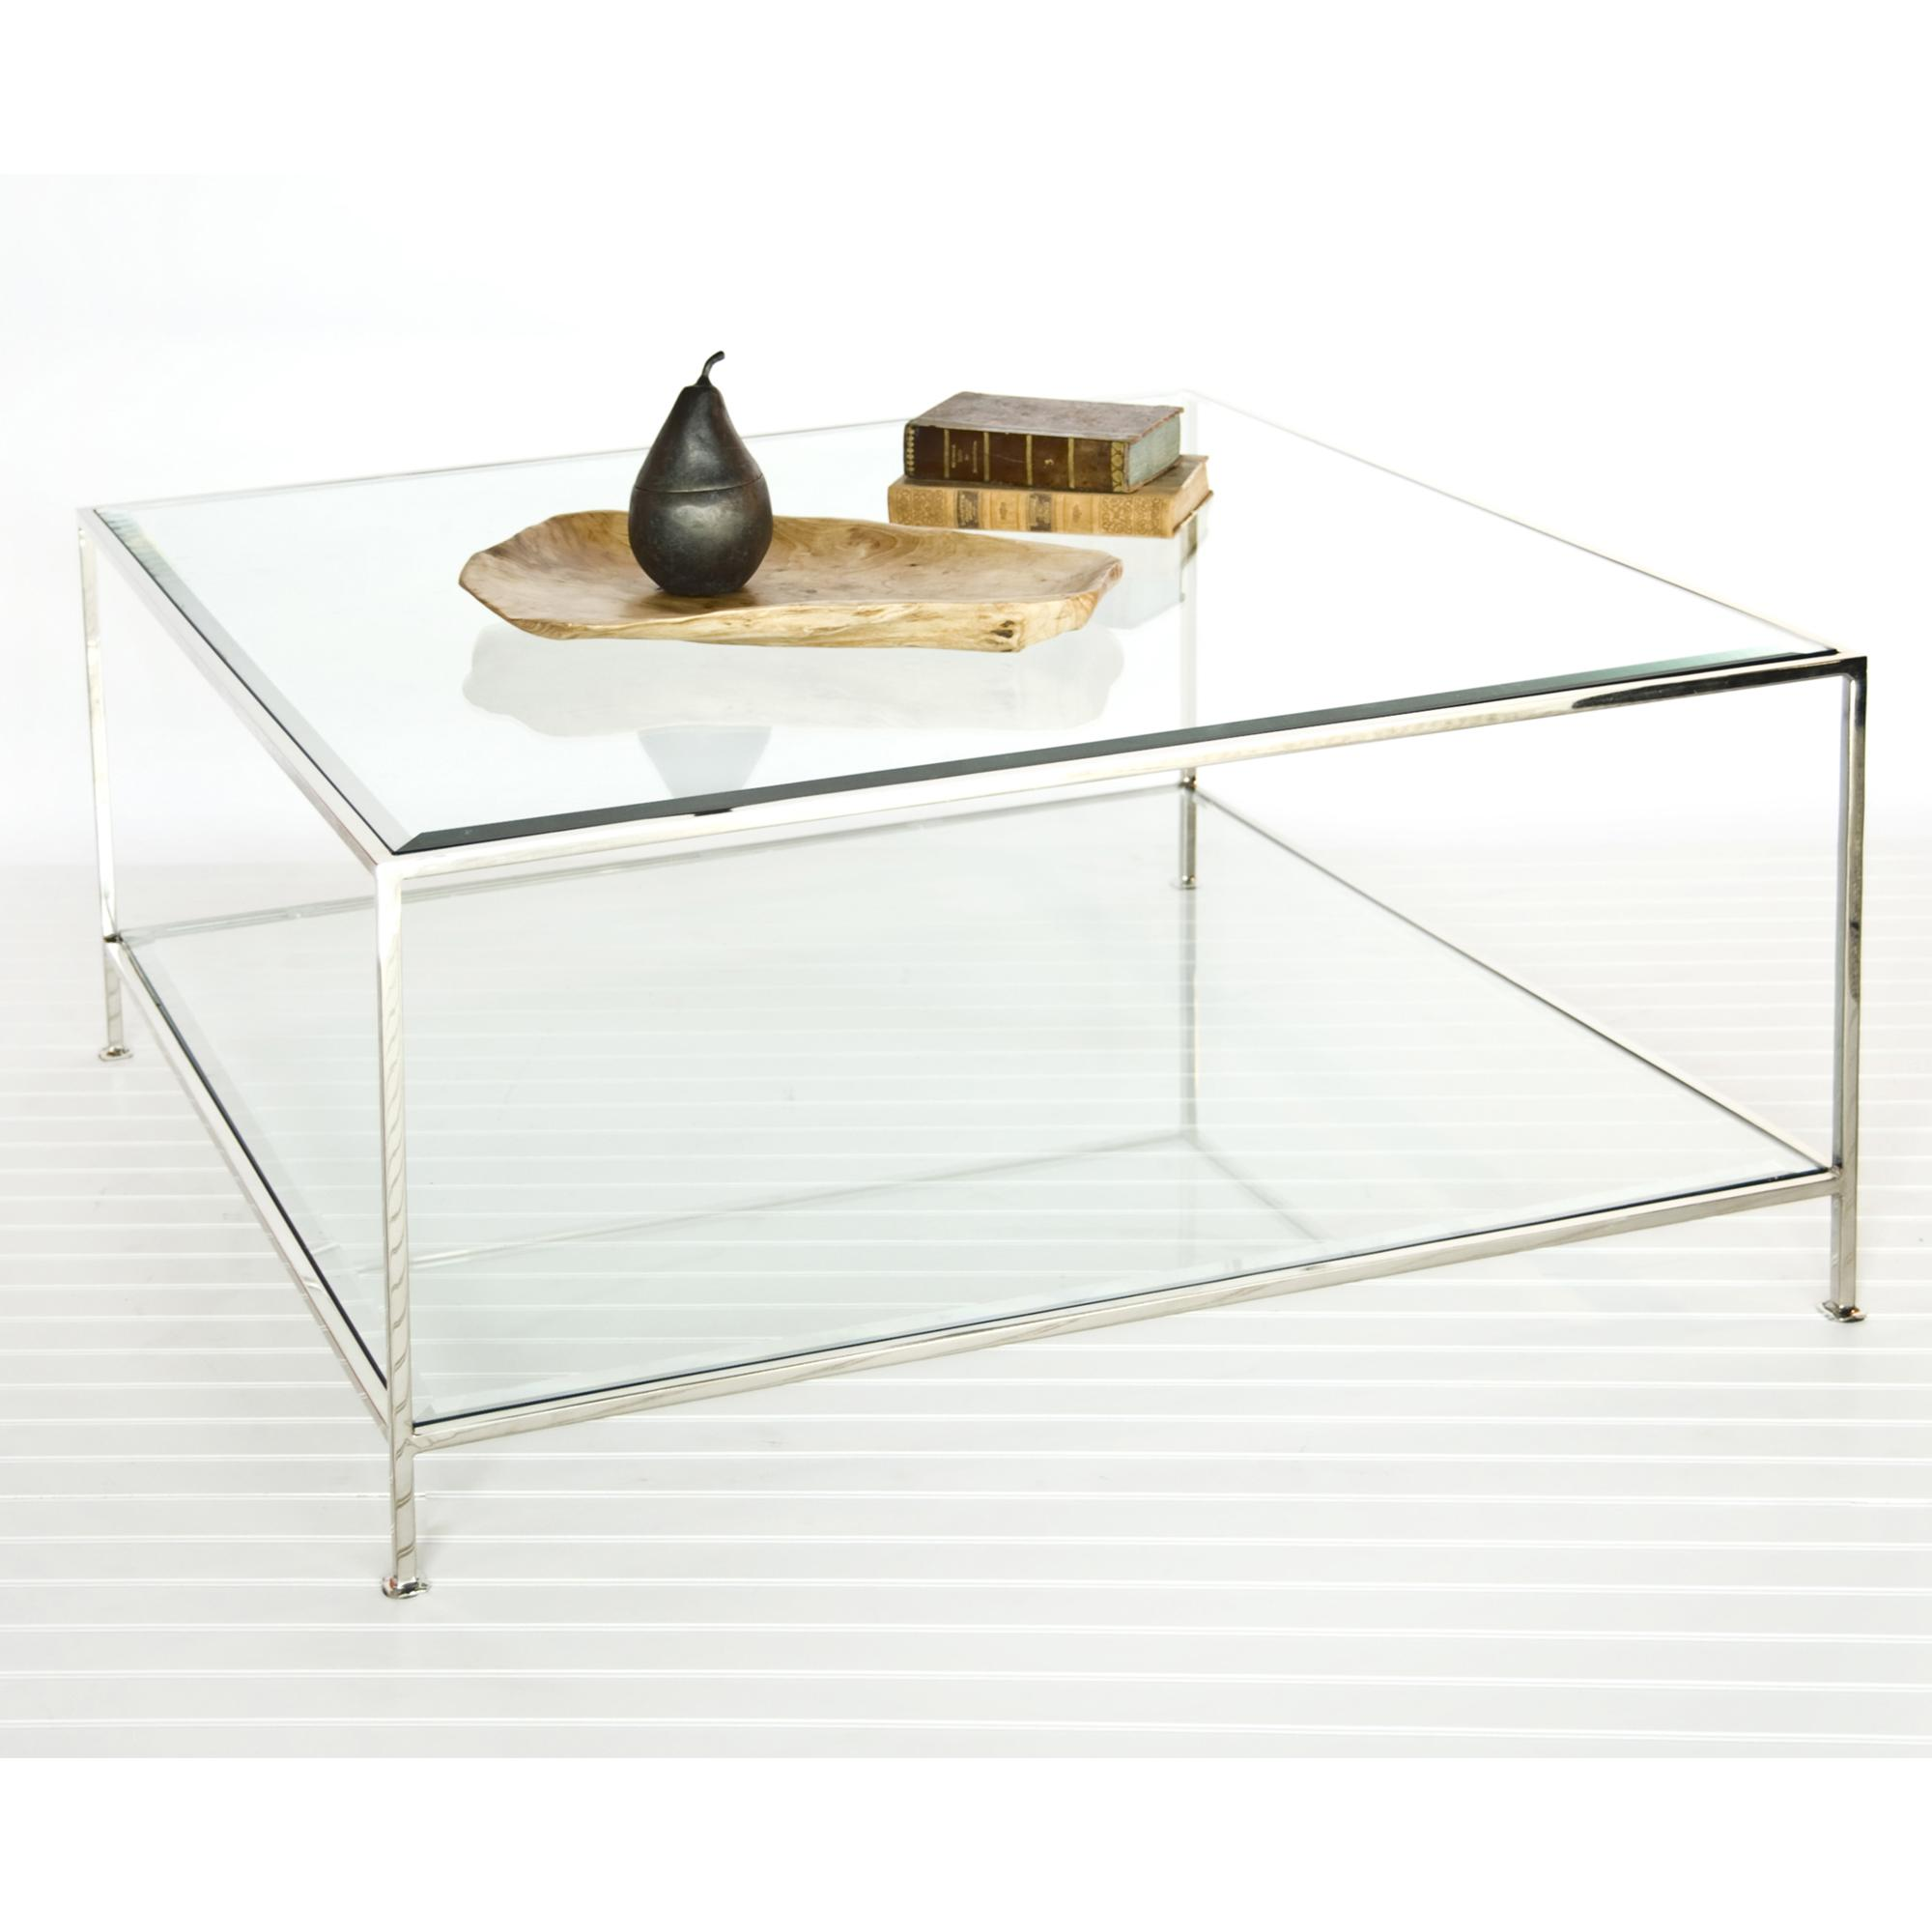 Square Coffee Table Modern Is This Lovely Recycled Wood Iron And Pine Shape Ensures That This Piece Will Make A Statement (Image 7 of 10)